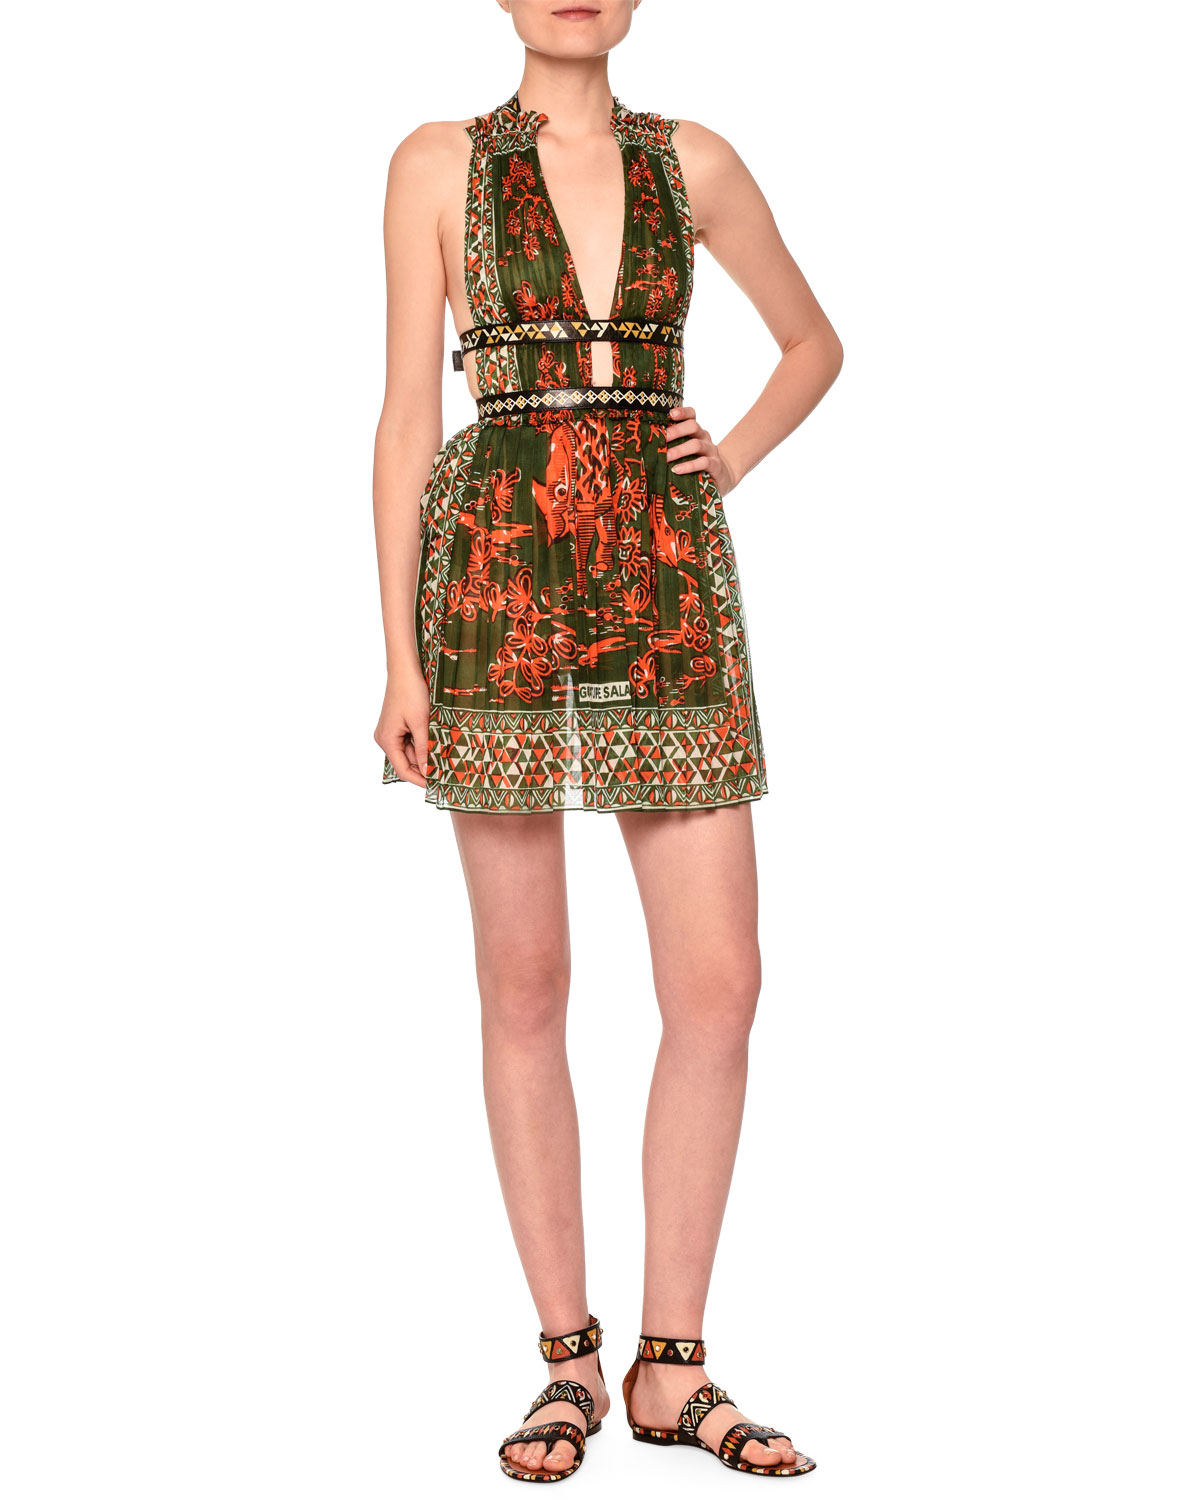 V-Neck Mini Dress W/Banded Waist, Orange/Green, Size: 10 - Valentino